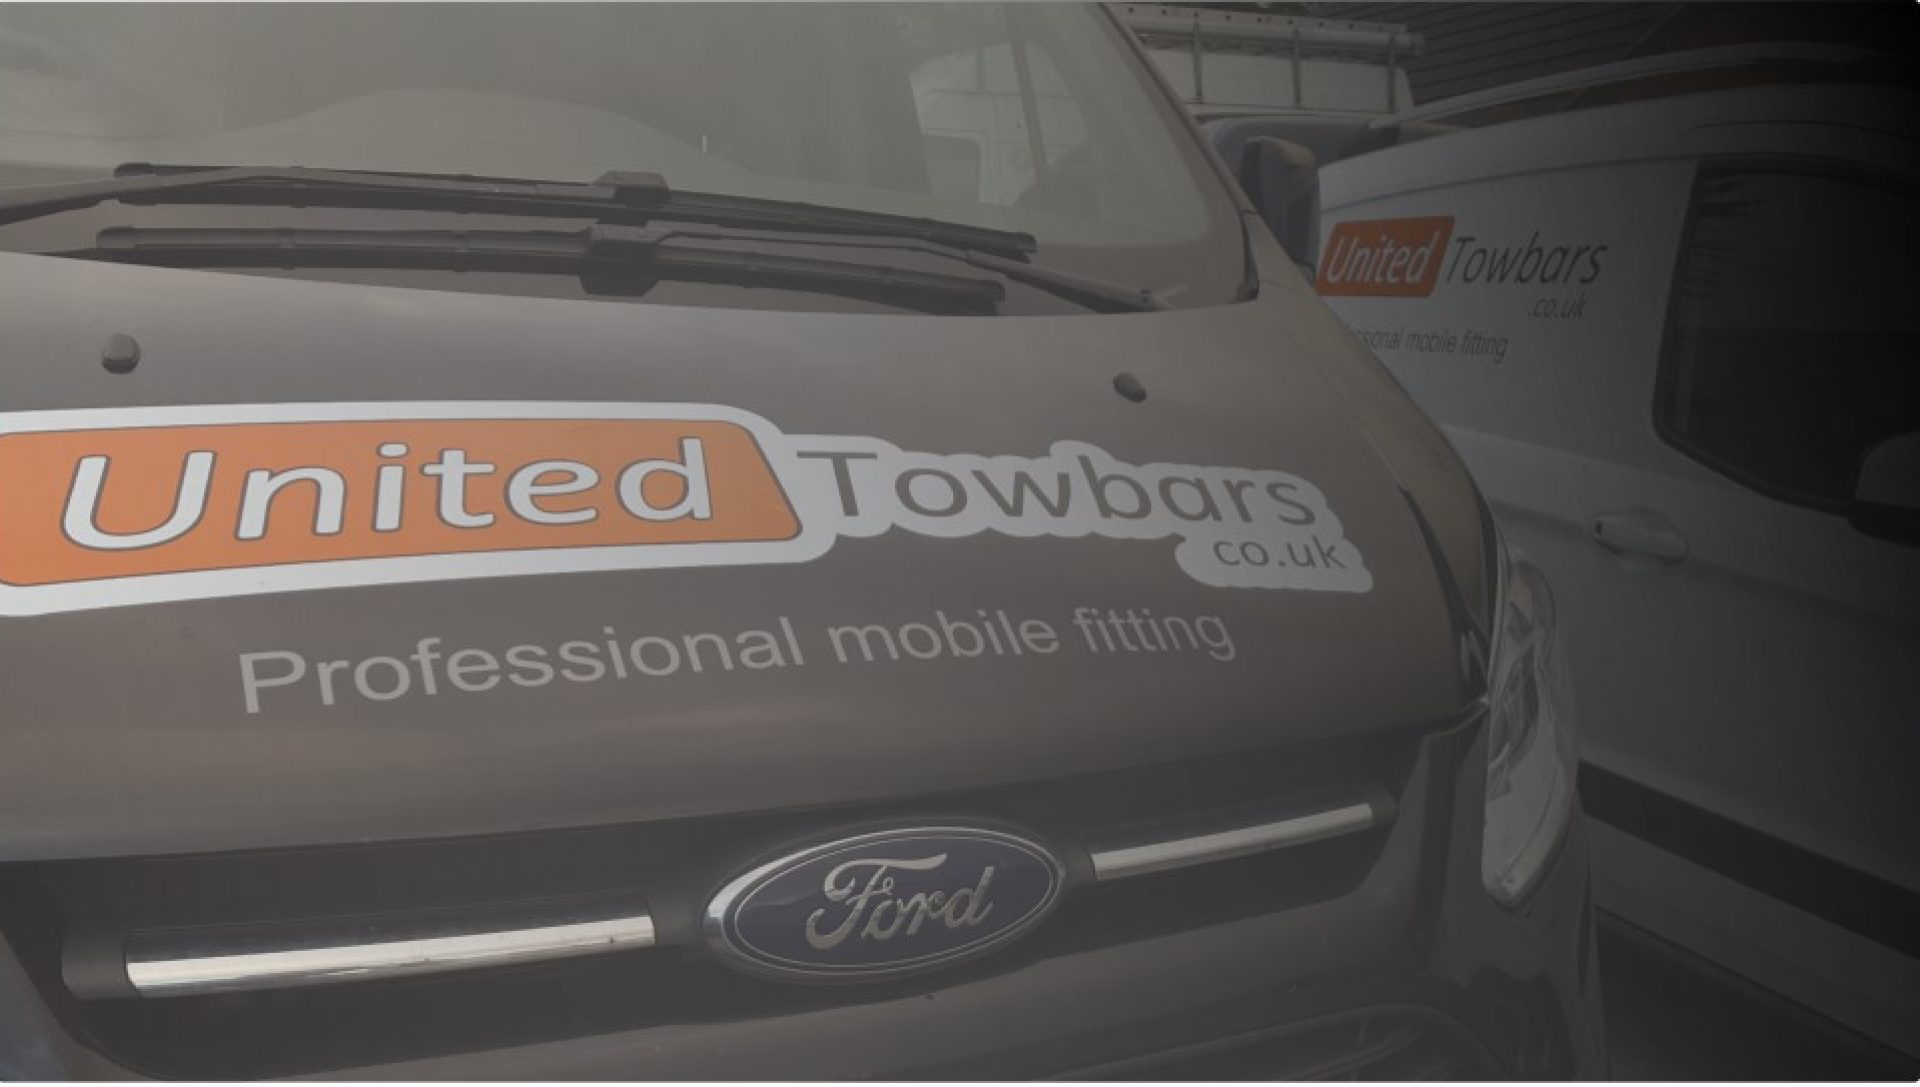 unitedtowbars – mobile fitting